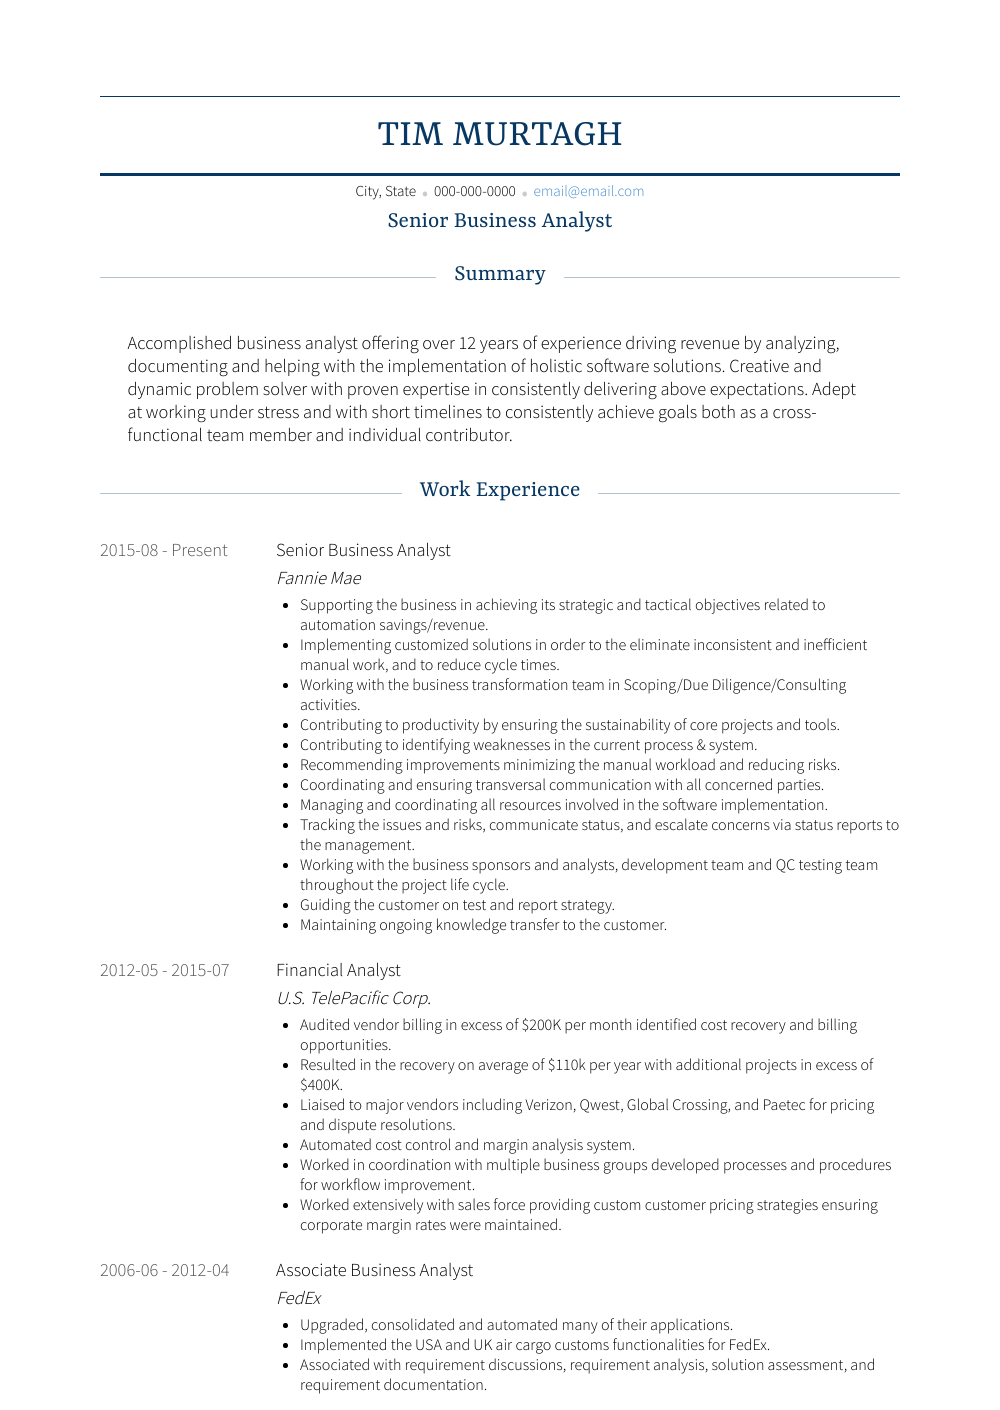 Senior Business Analyst View Sample